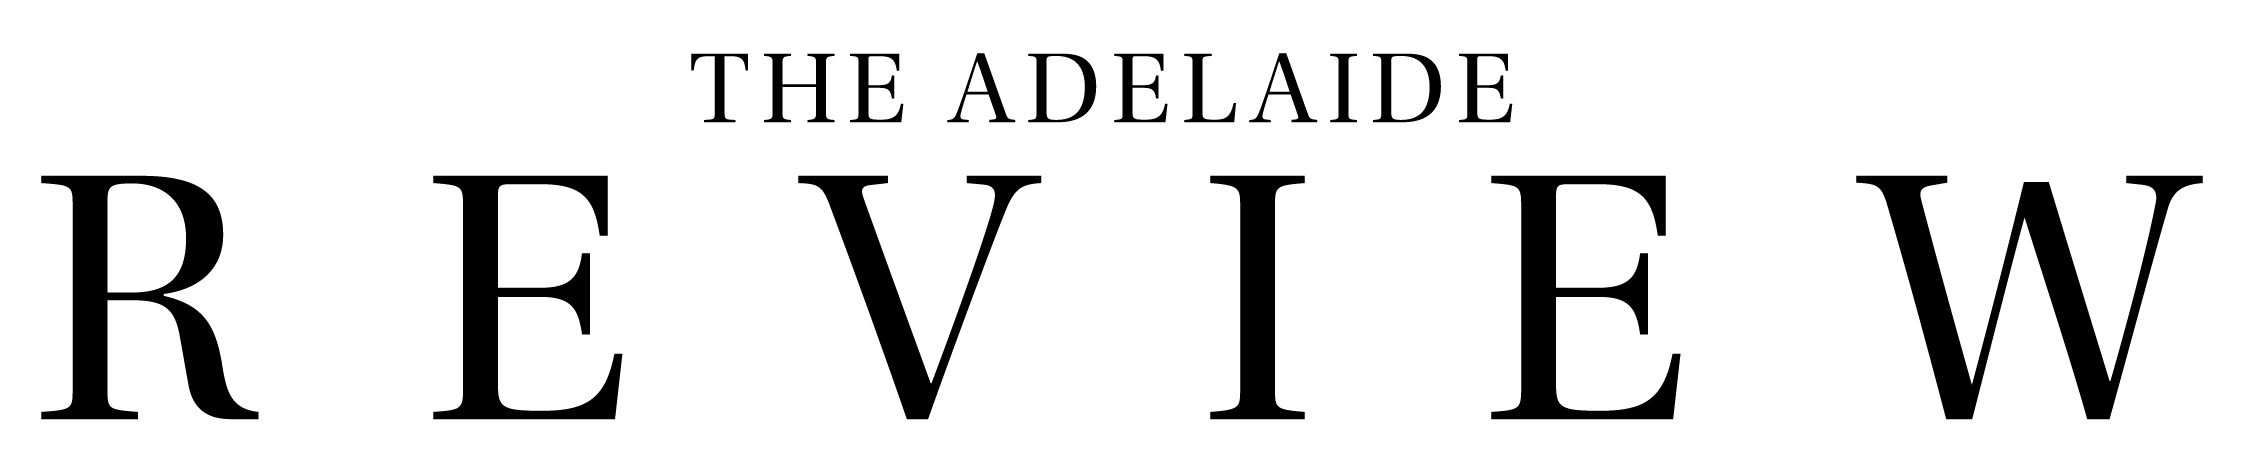 The Adelaide Review